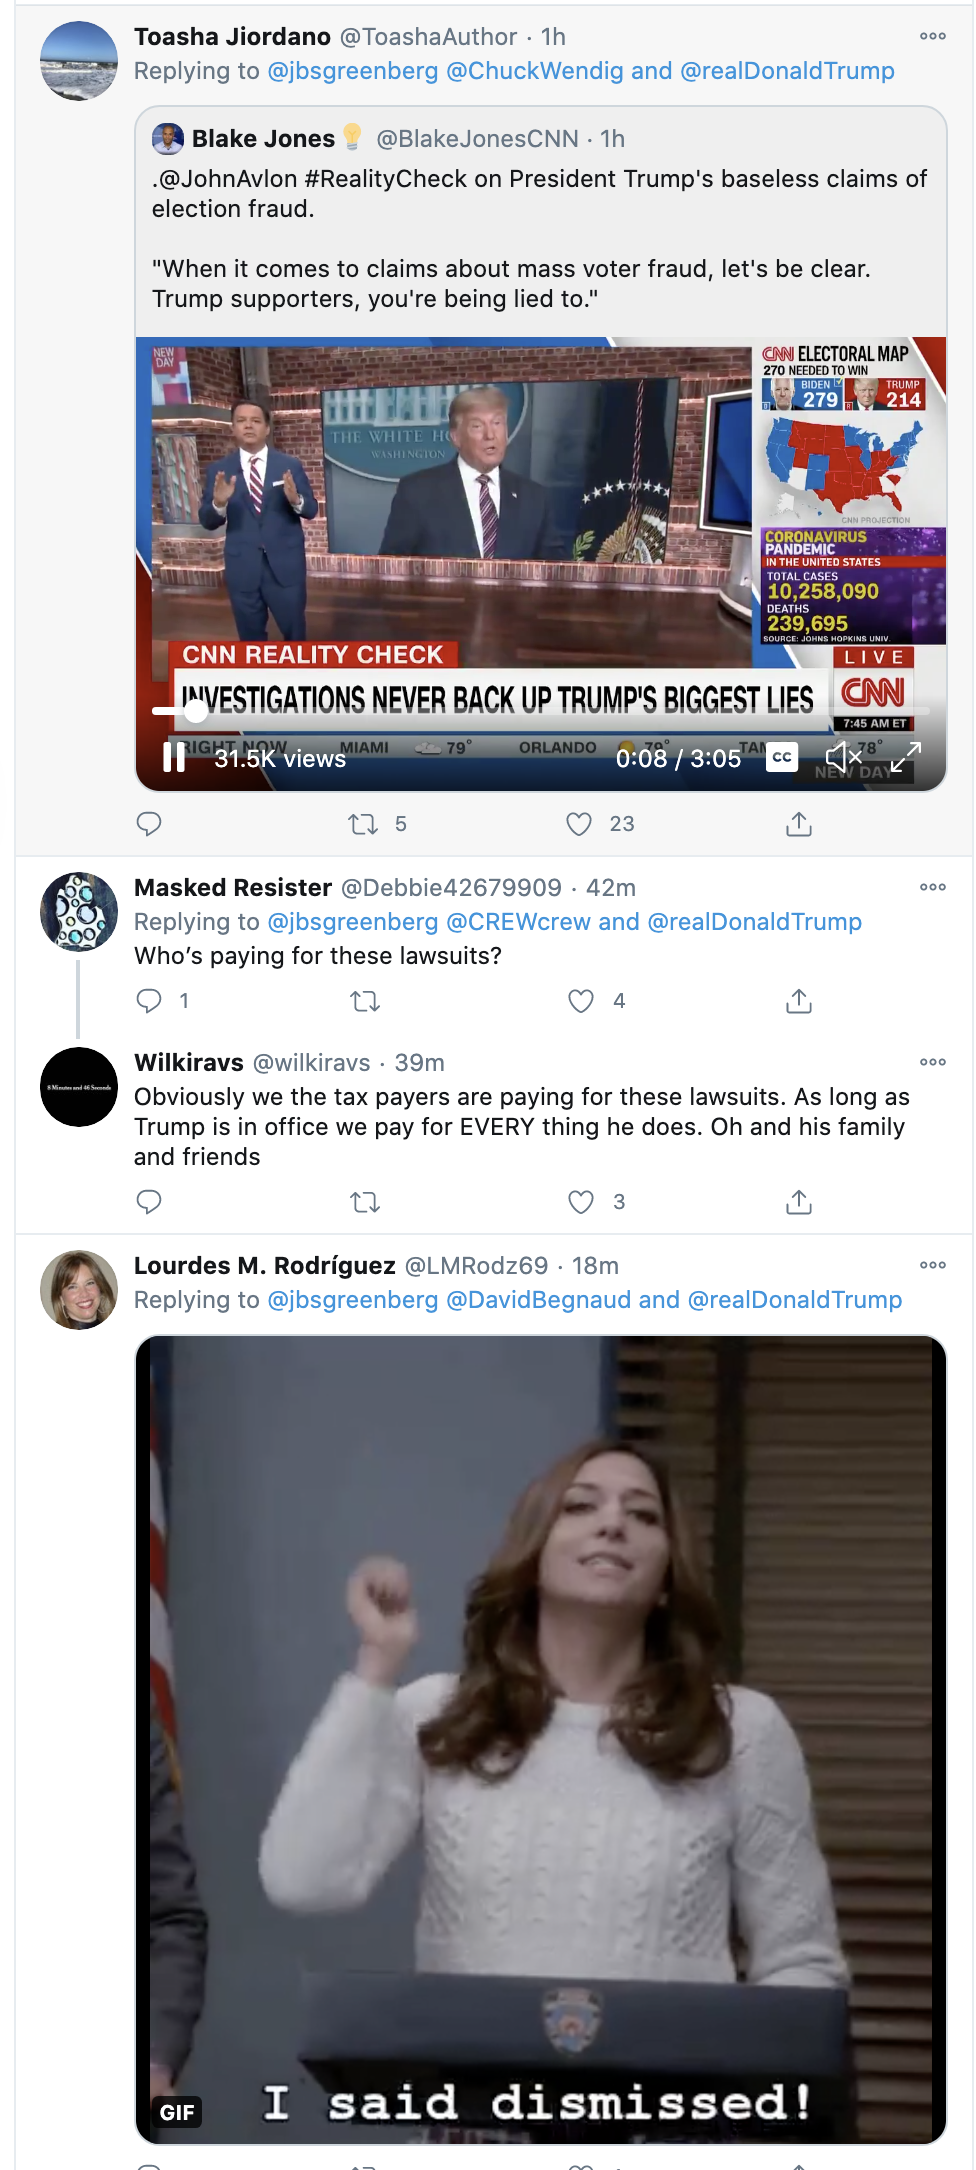 Screen-Shot-2020-11-11-at-8.22.10-AM Pennsylvania Judge Embarrasses Trump Lawyer Over Pathetic Evidence Featured Media National Security Politics Top Stories